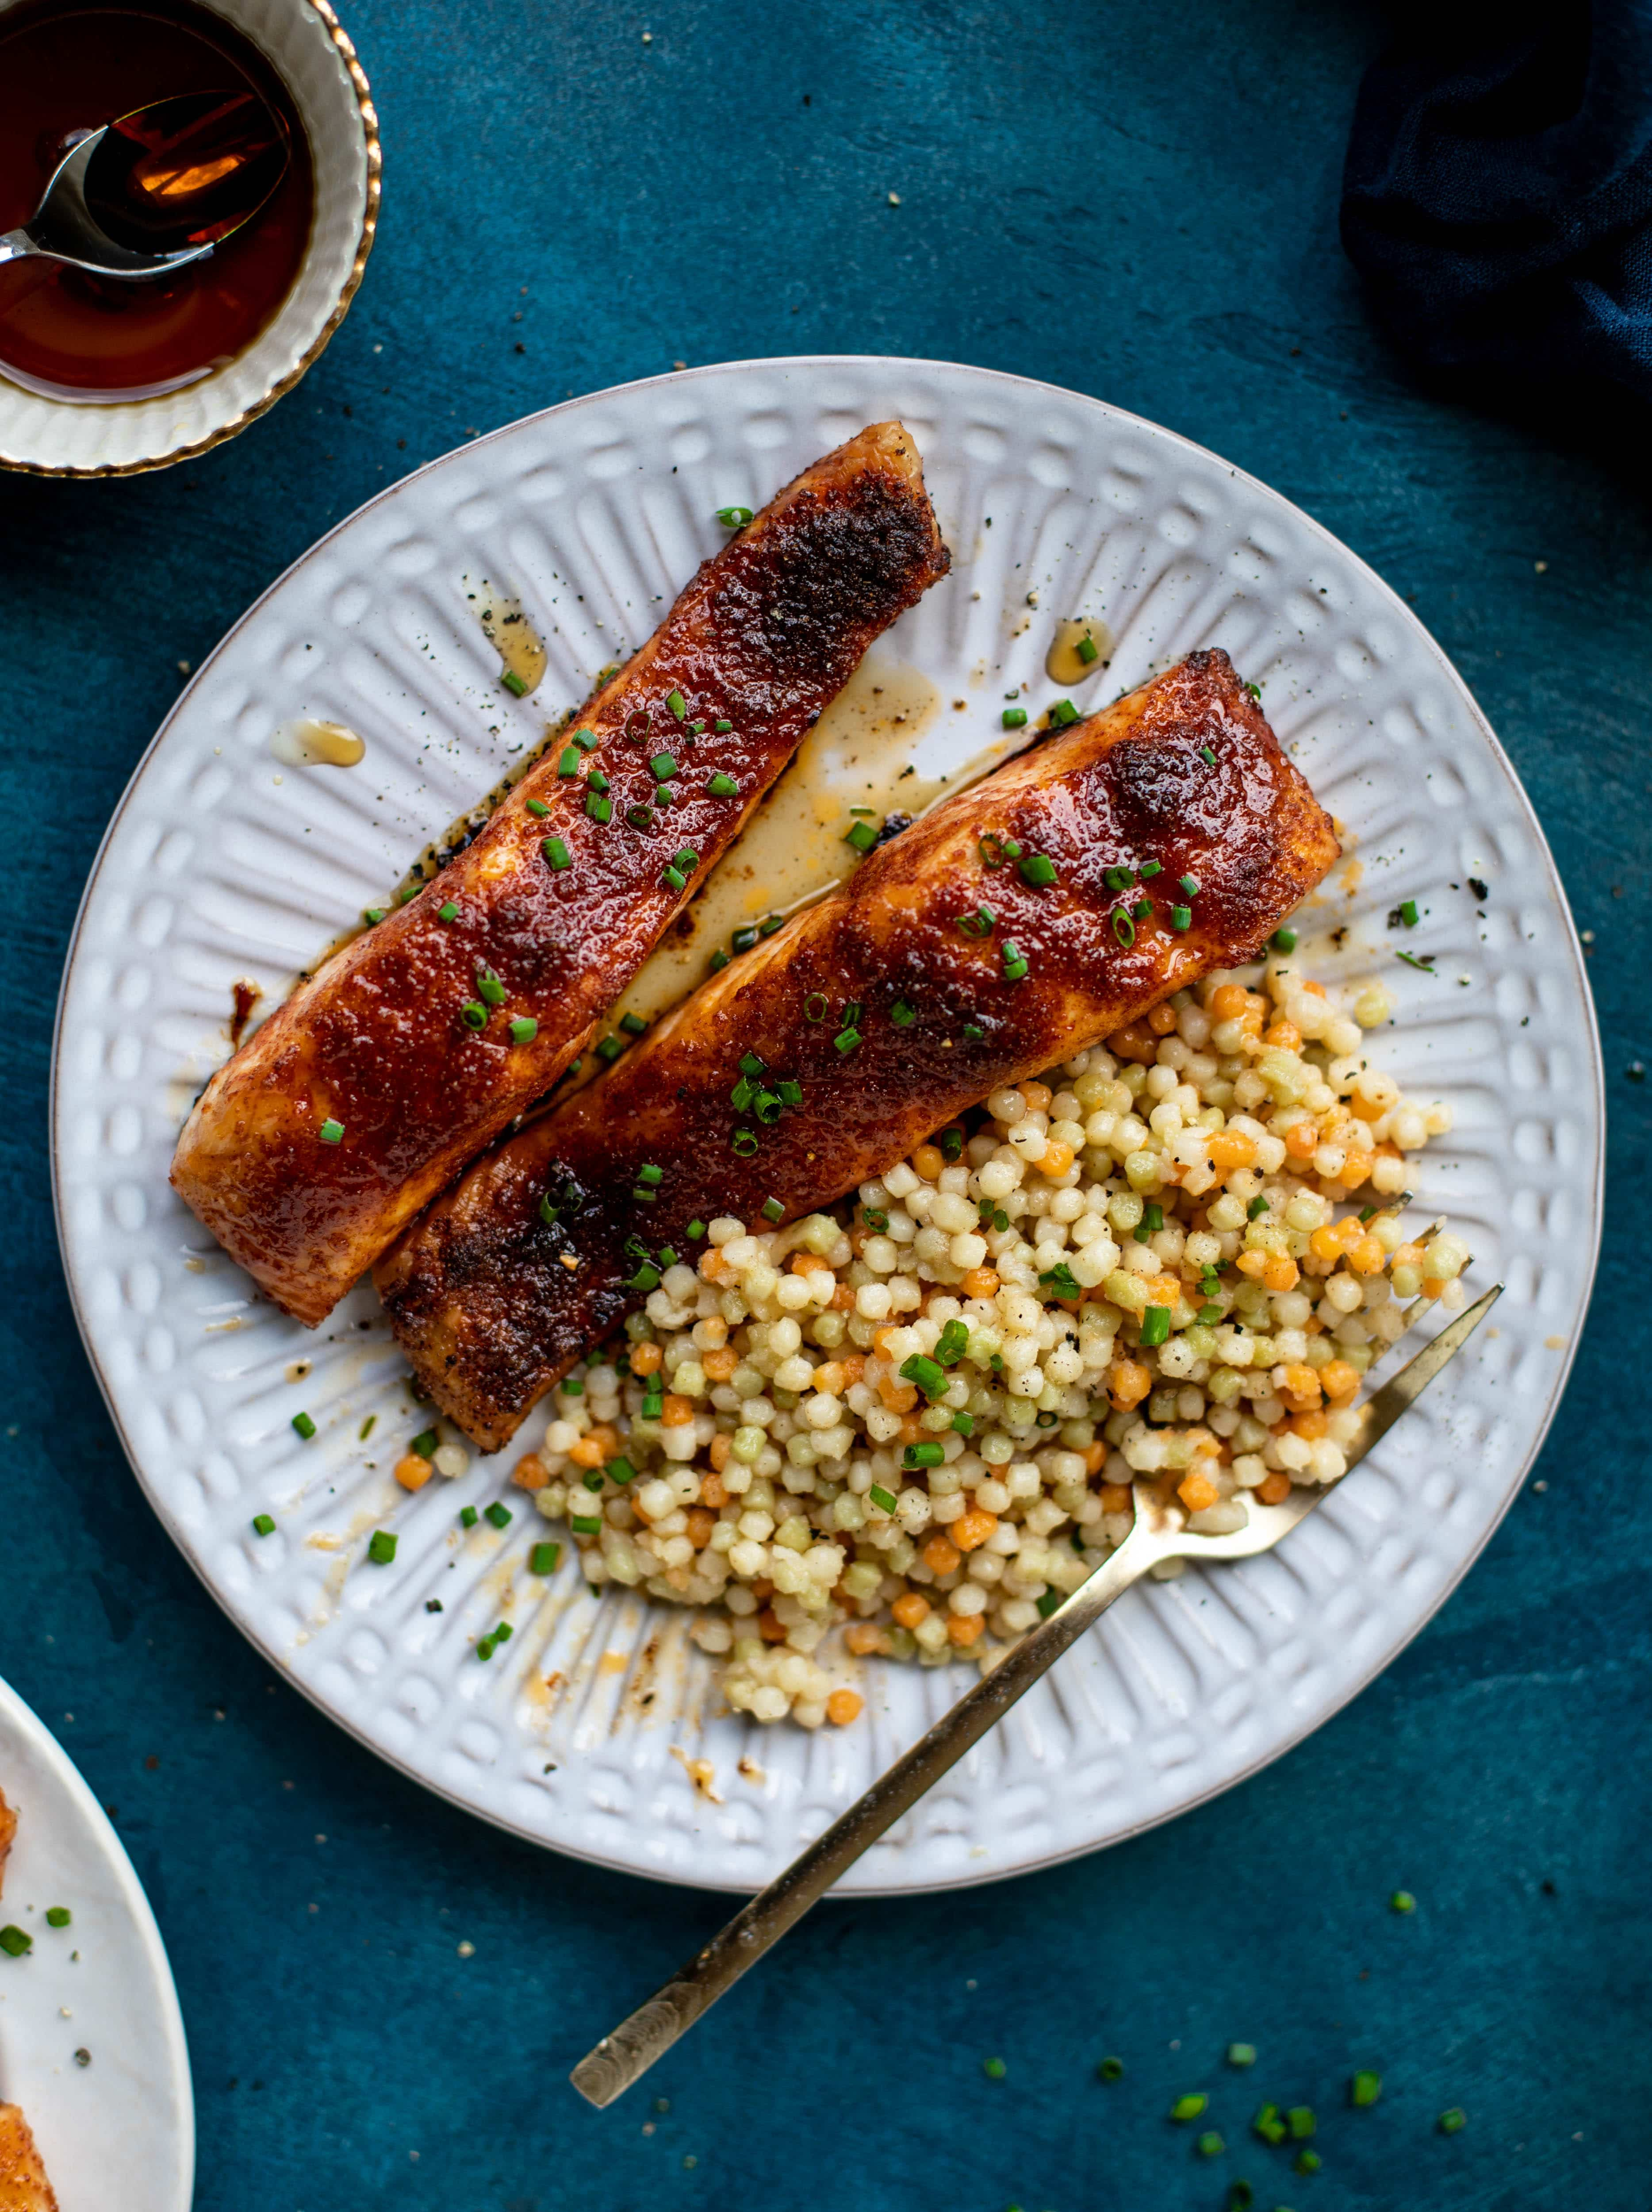 This maple bbq salmon is a quick and delicious weeknight meal. Serve with brown butter couscous and your favorite veg to round it out!